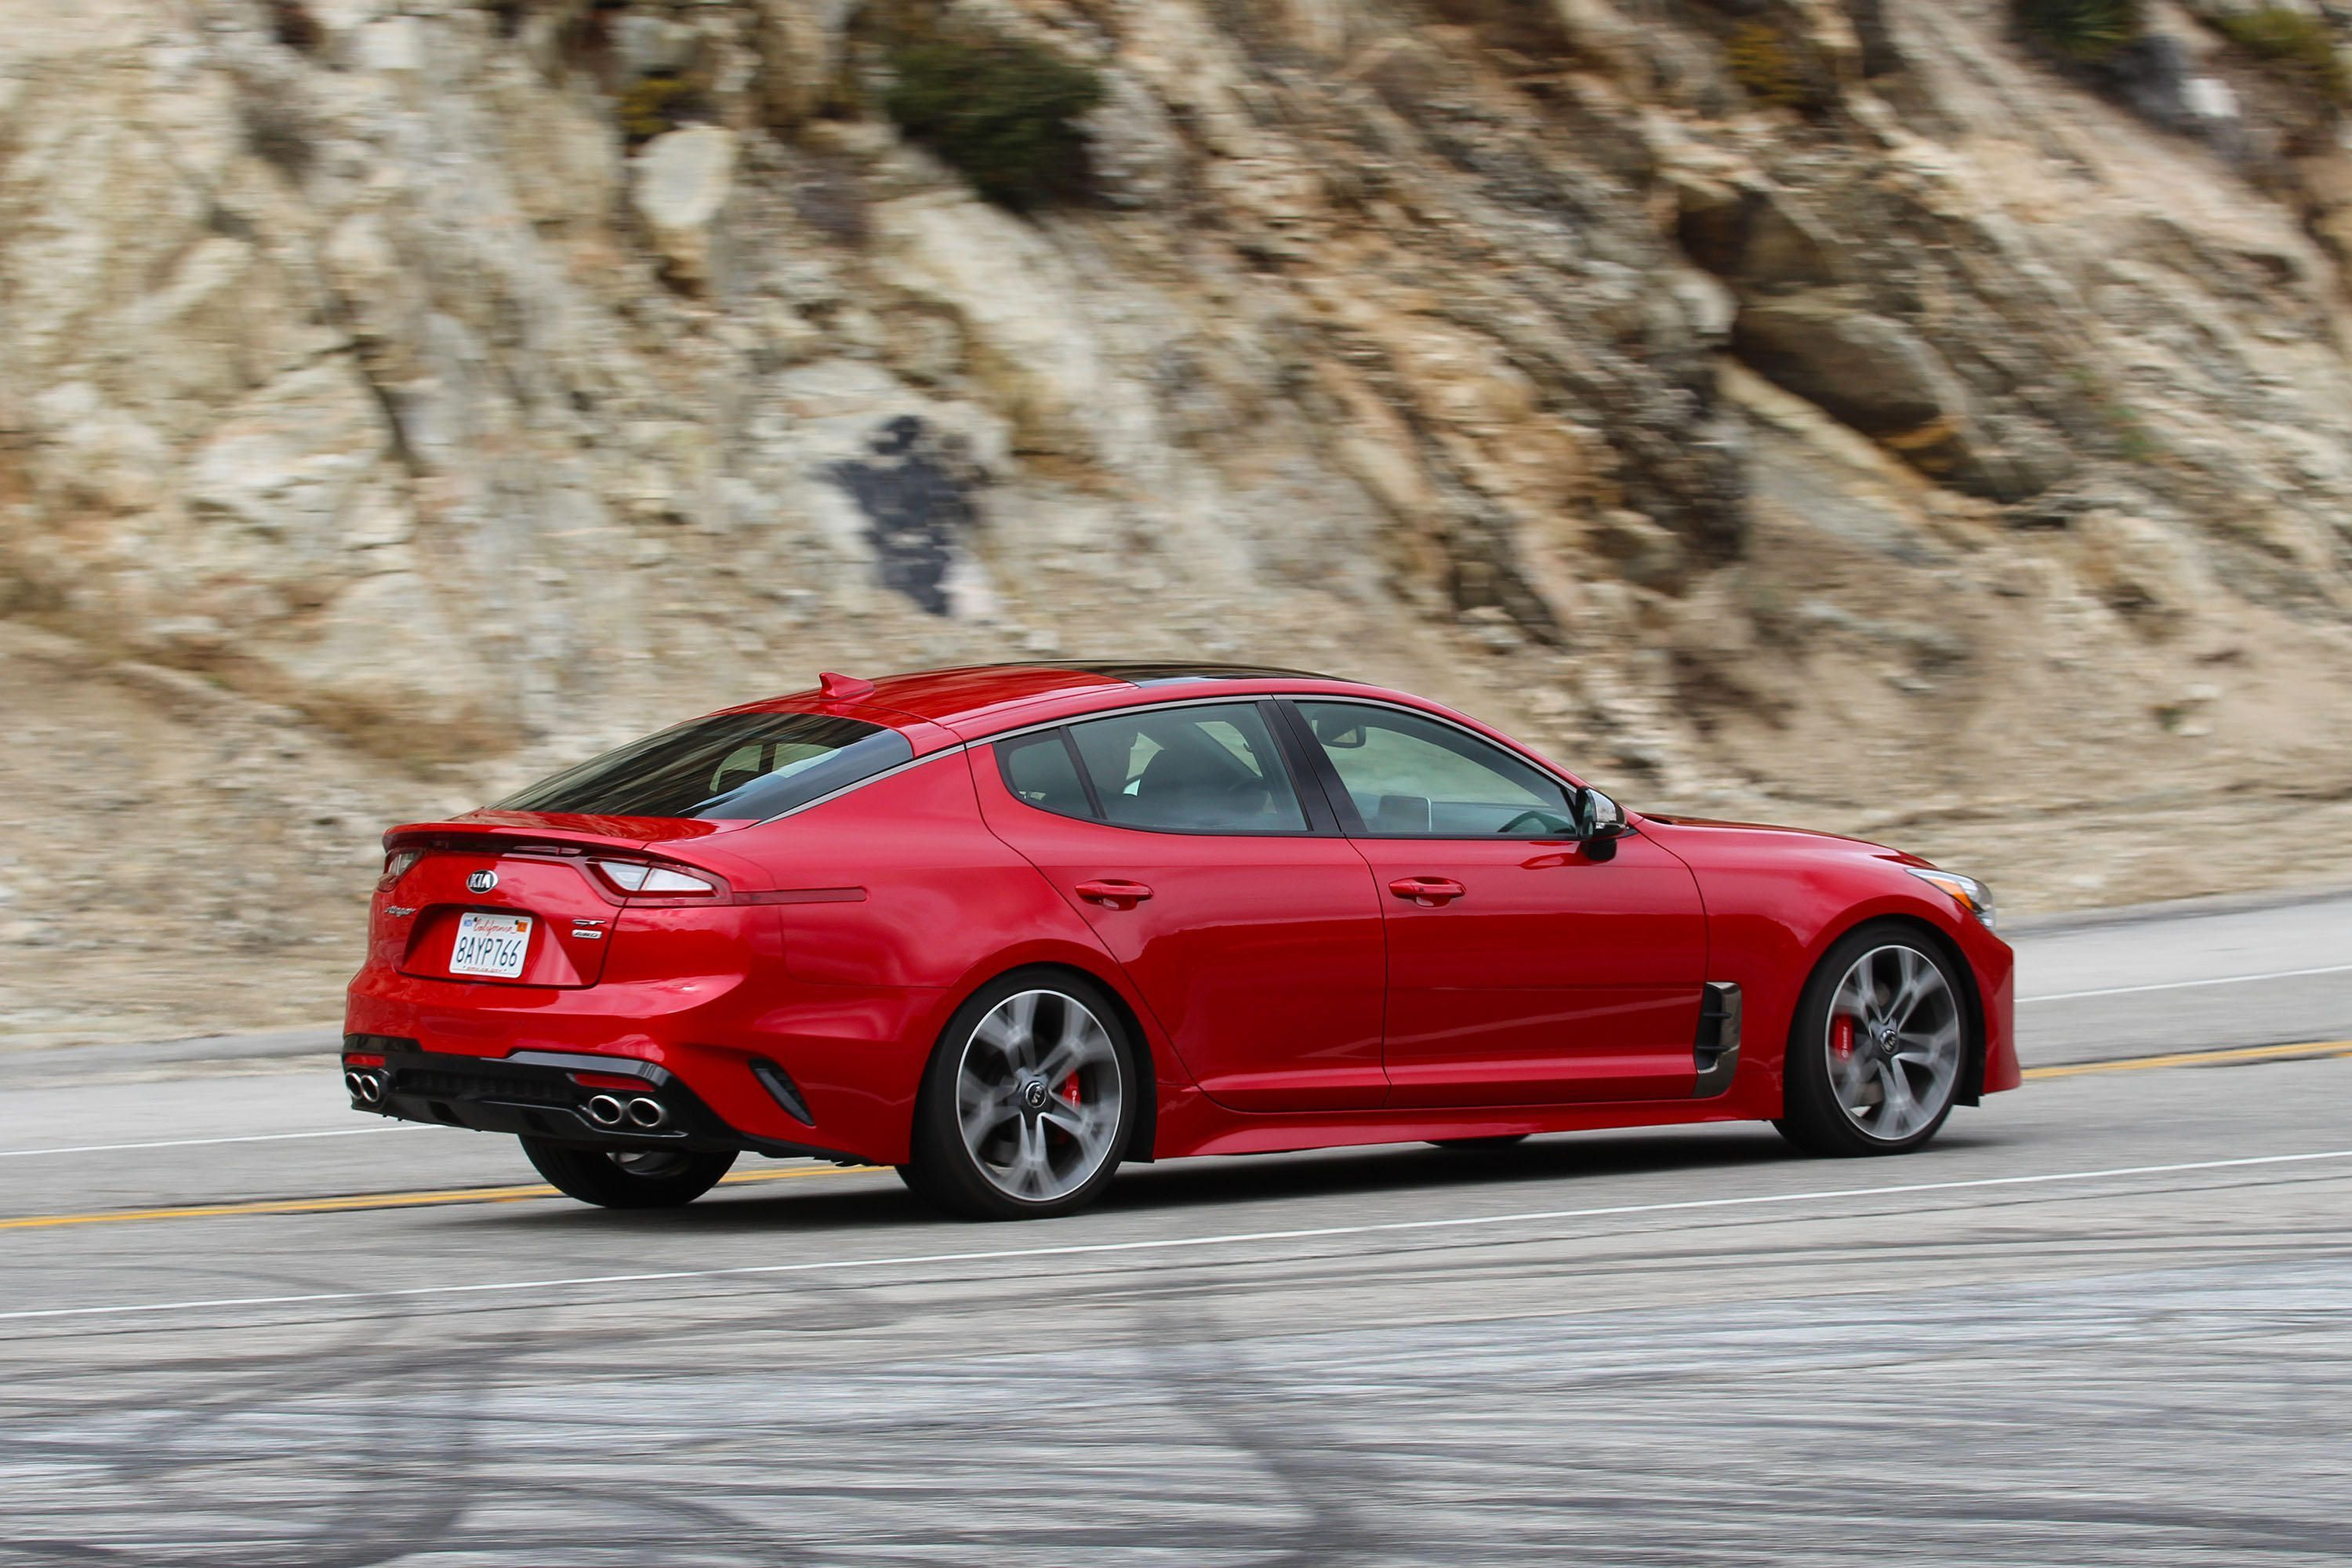 2020 Kia Stinger Gt2 Specs And Review Kia Stinger Kia New Cars